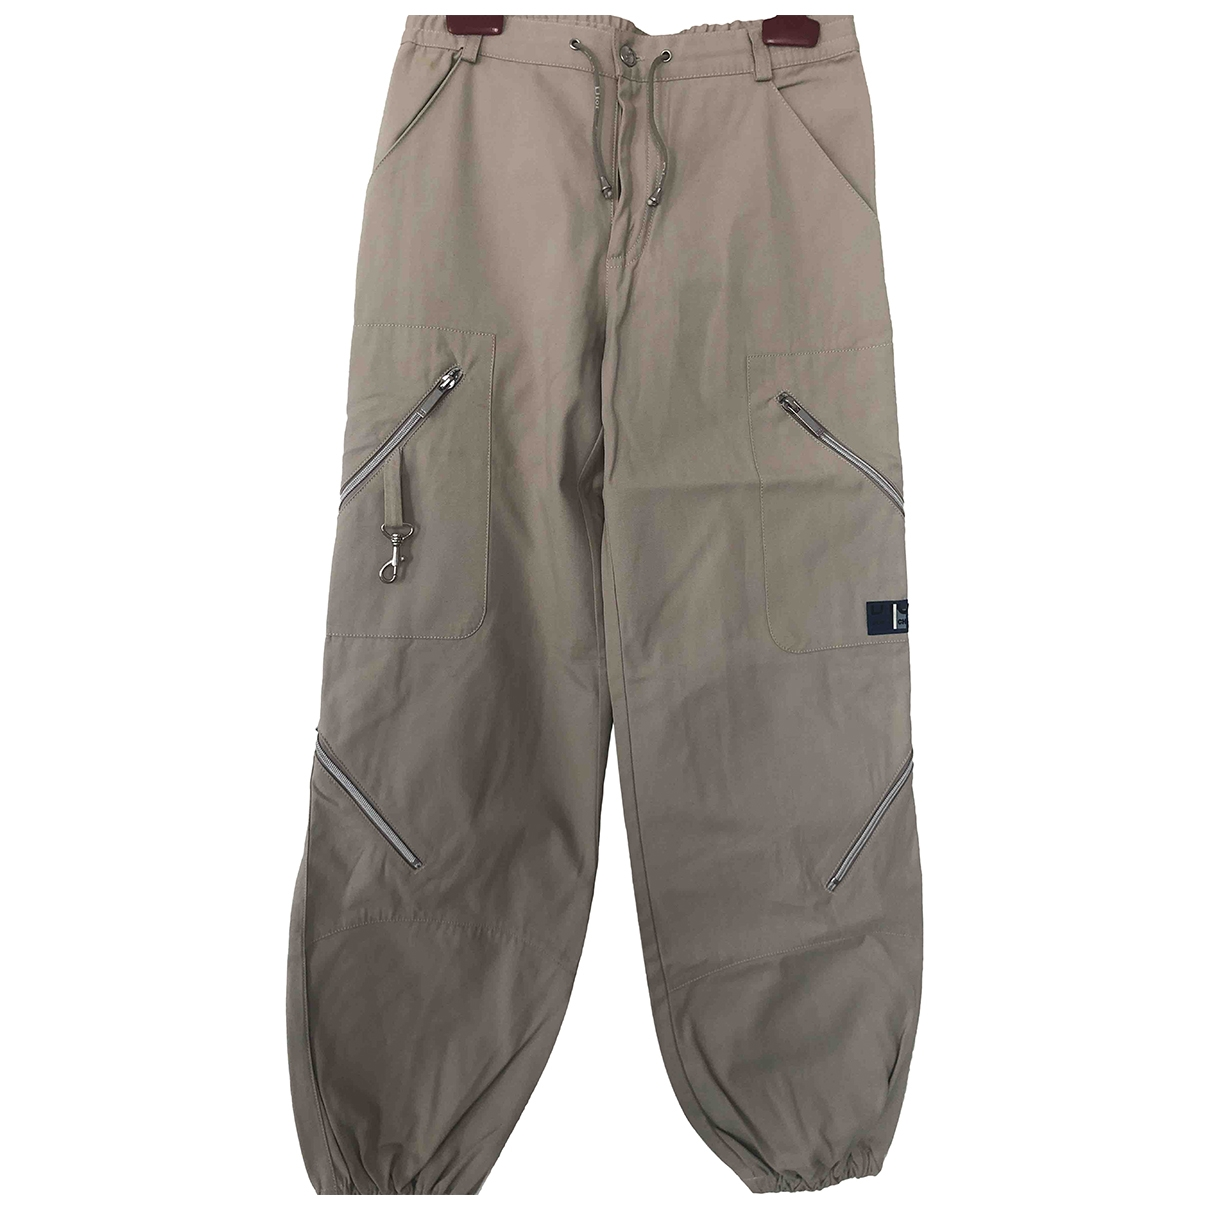 Dior \N Beige Cotton Trousers for Kids 12 years - XS FR